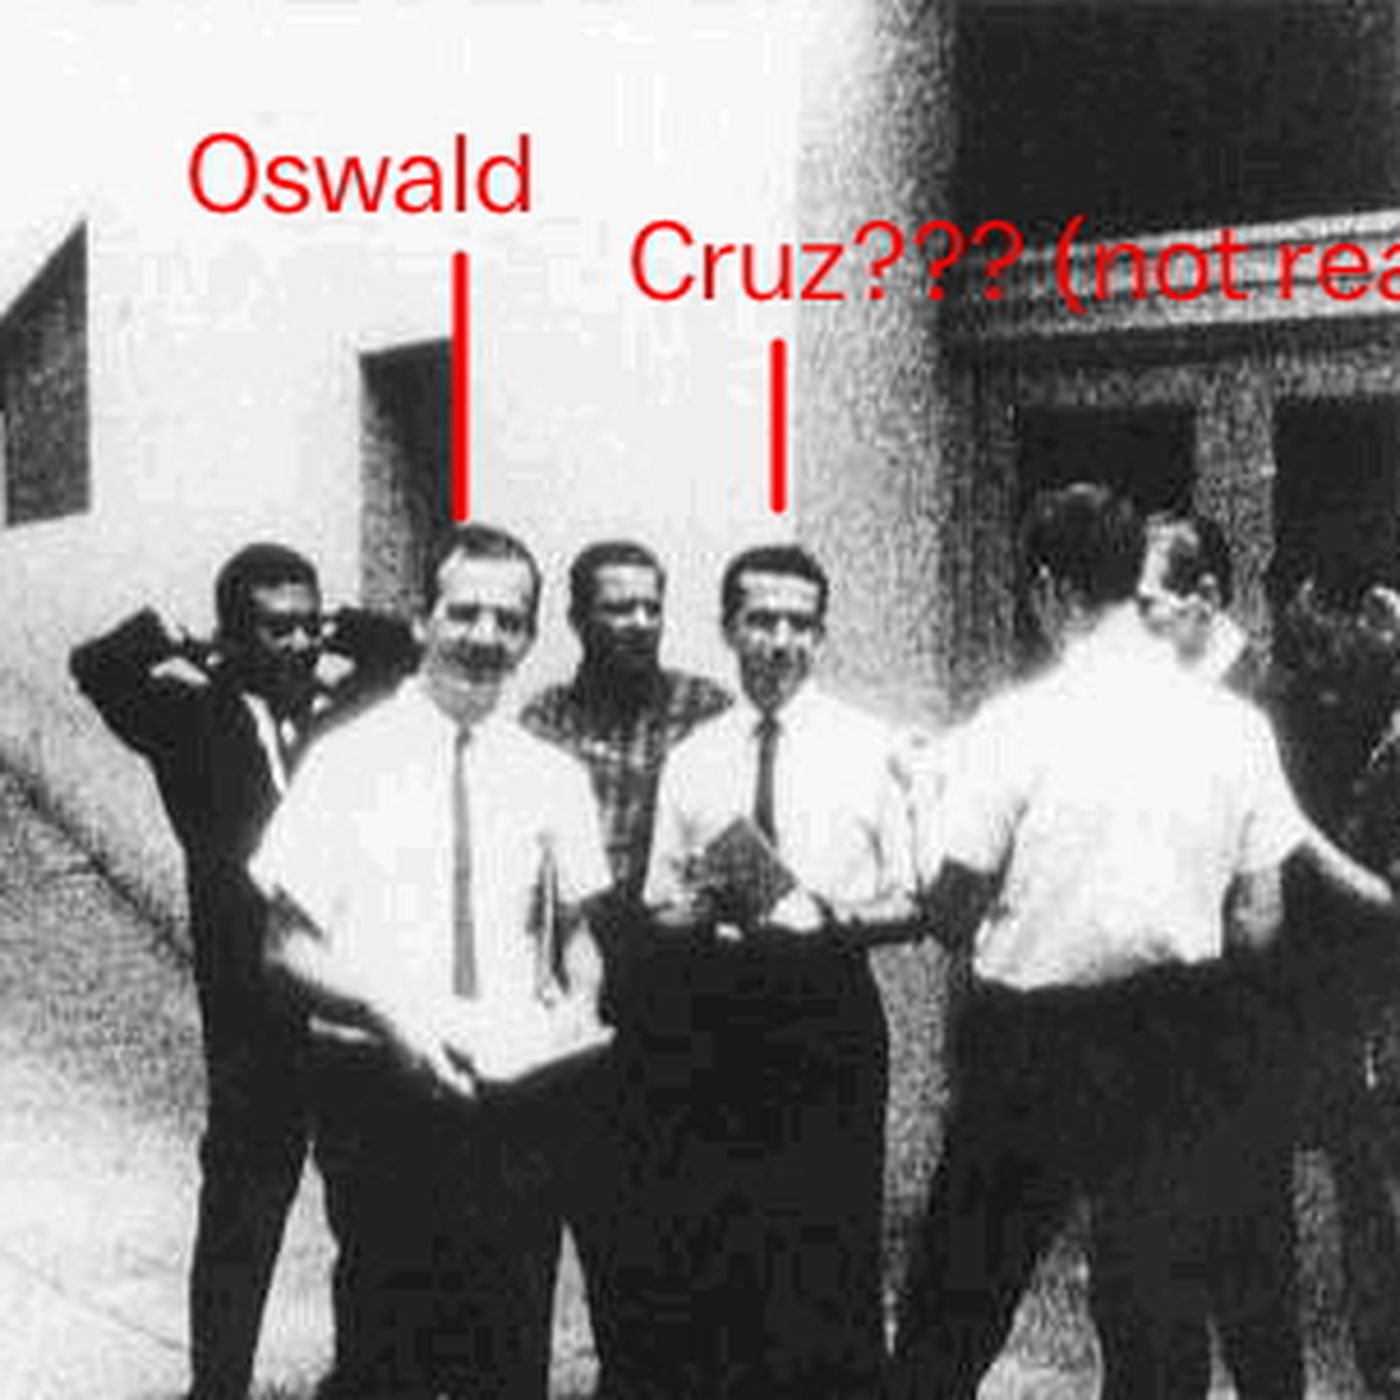 We shouldn't have to explain that Ted Cruz's dad didn't kill